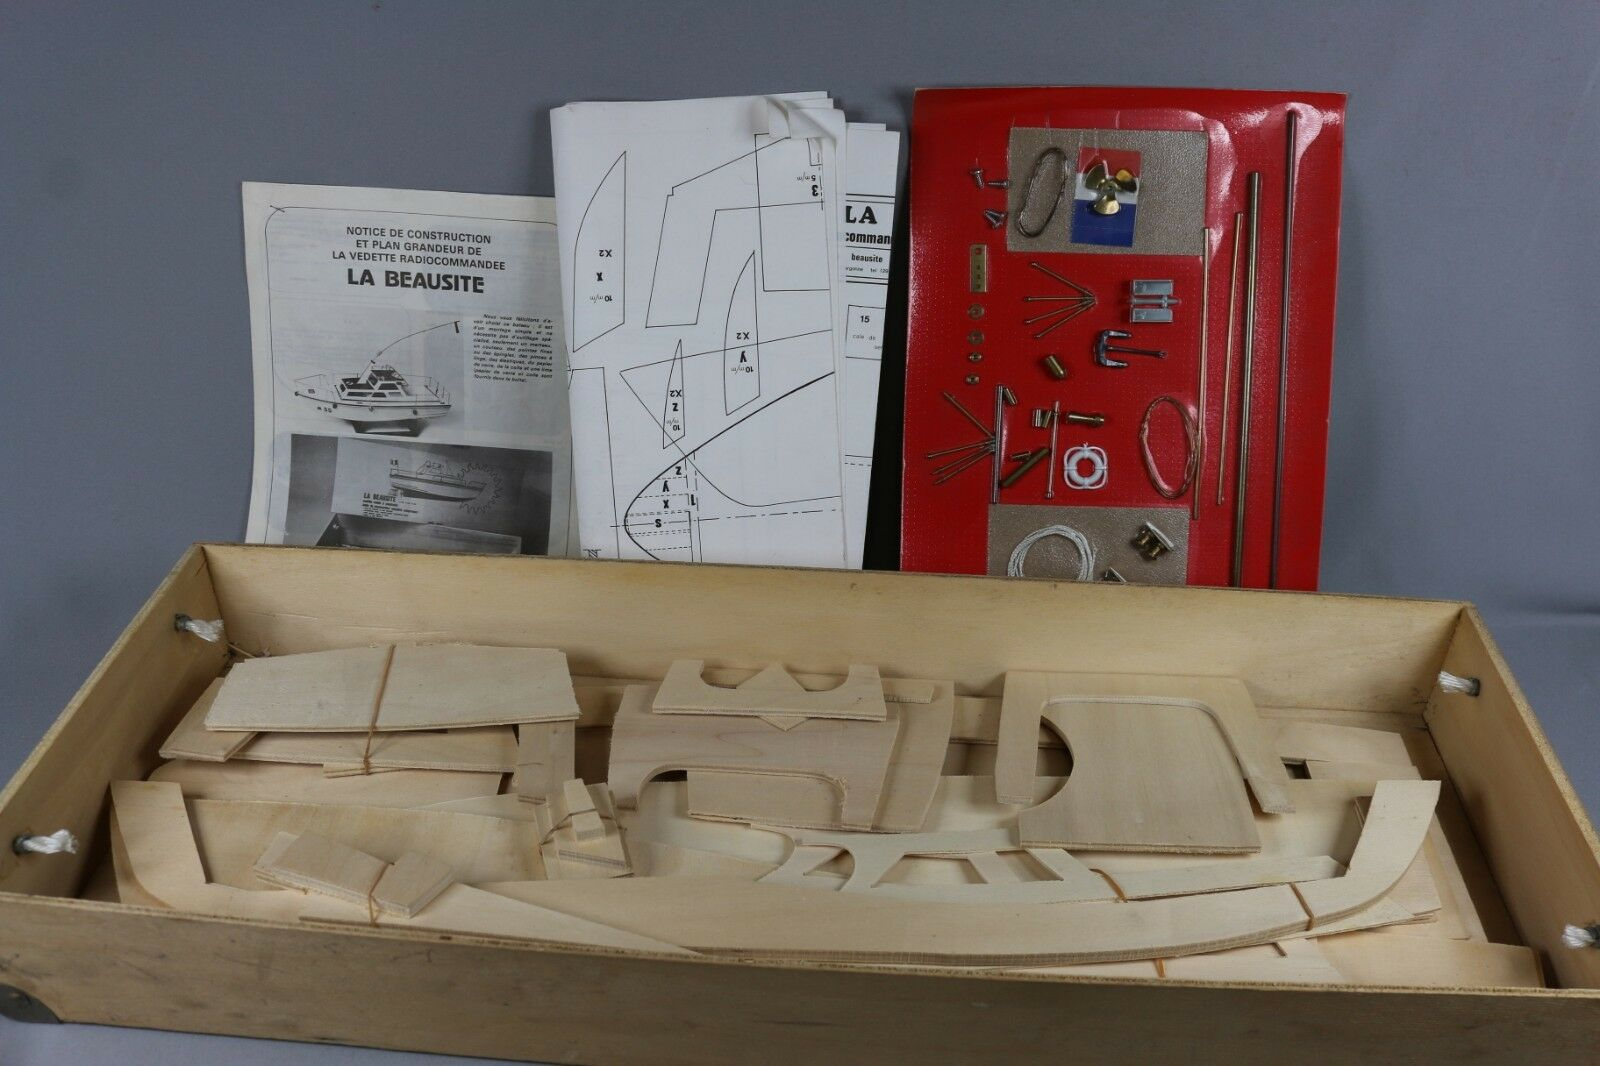 Zf1608 Emballaire Rc Boat Kit Balsa Wood La Beausite 700x220x280mm